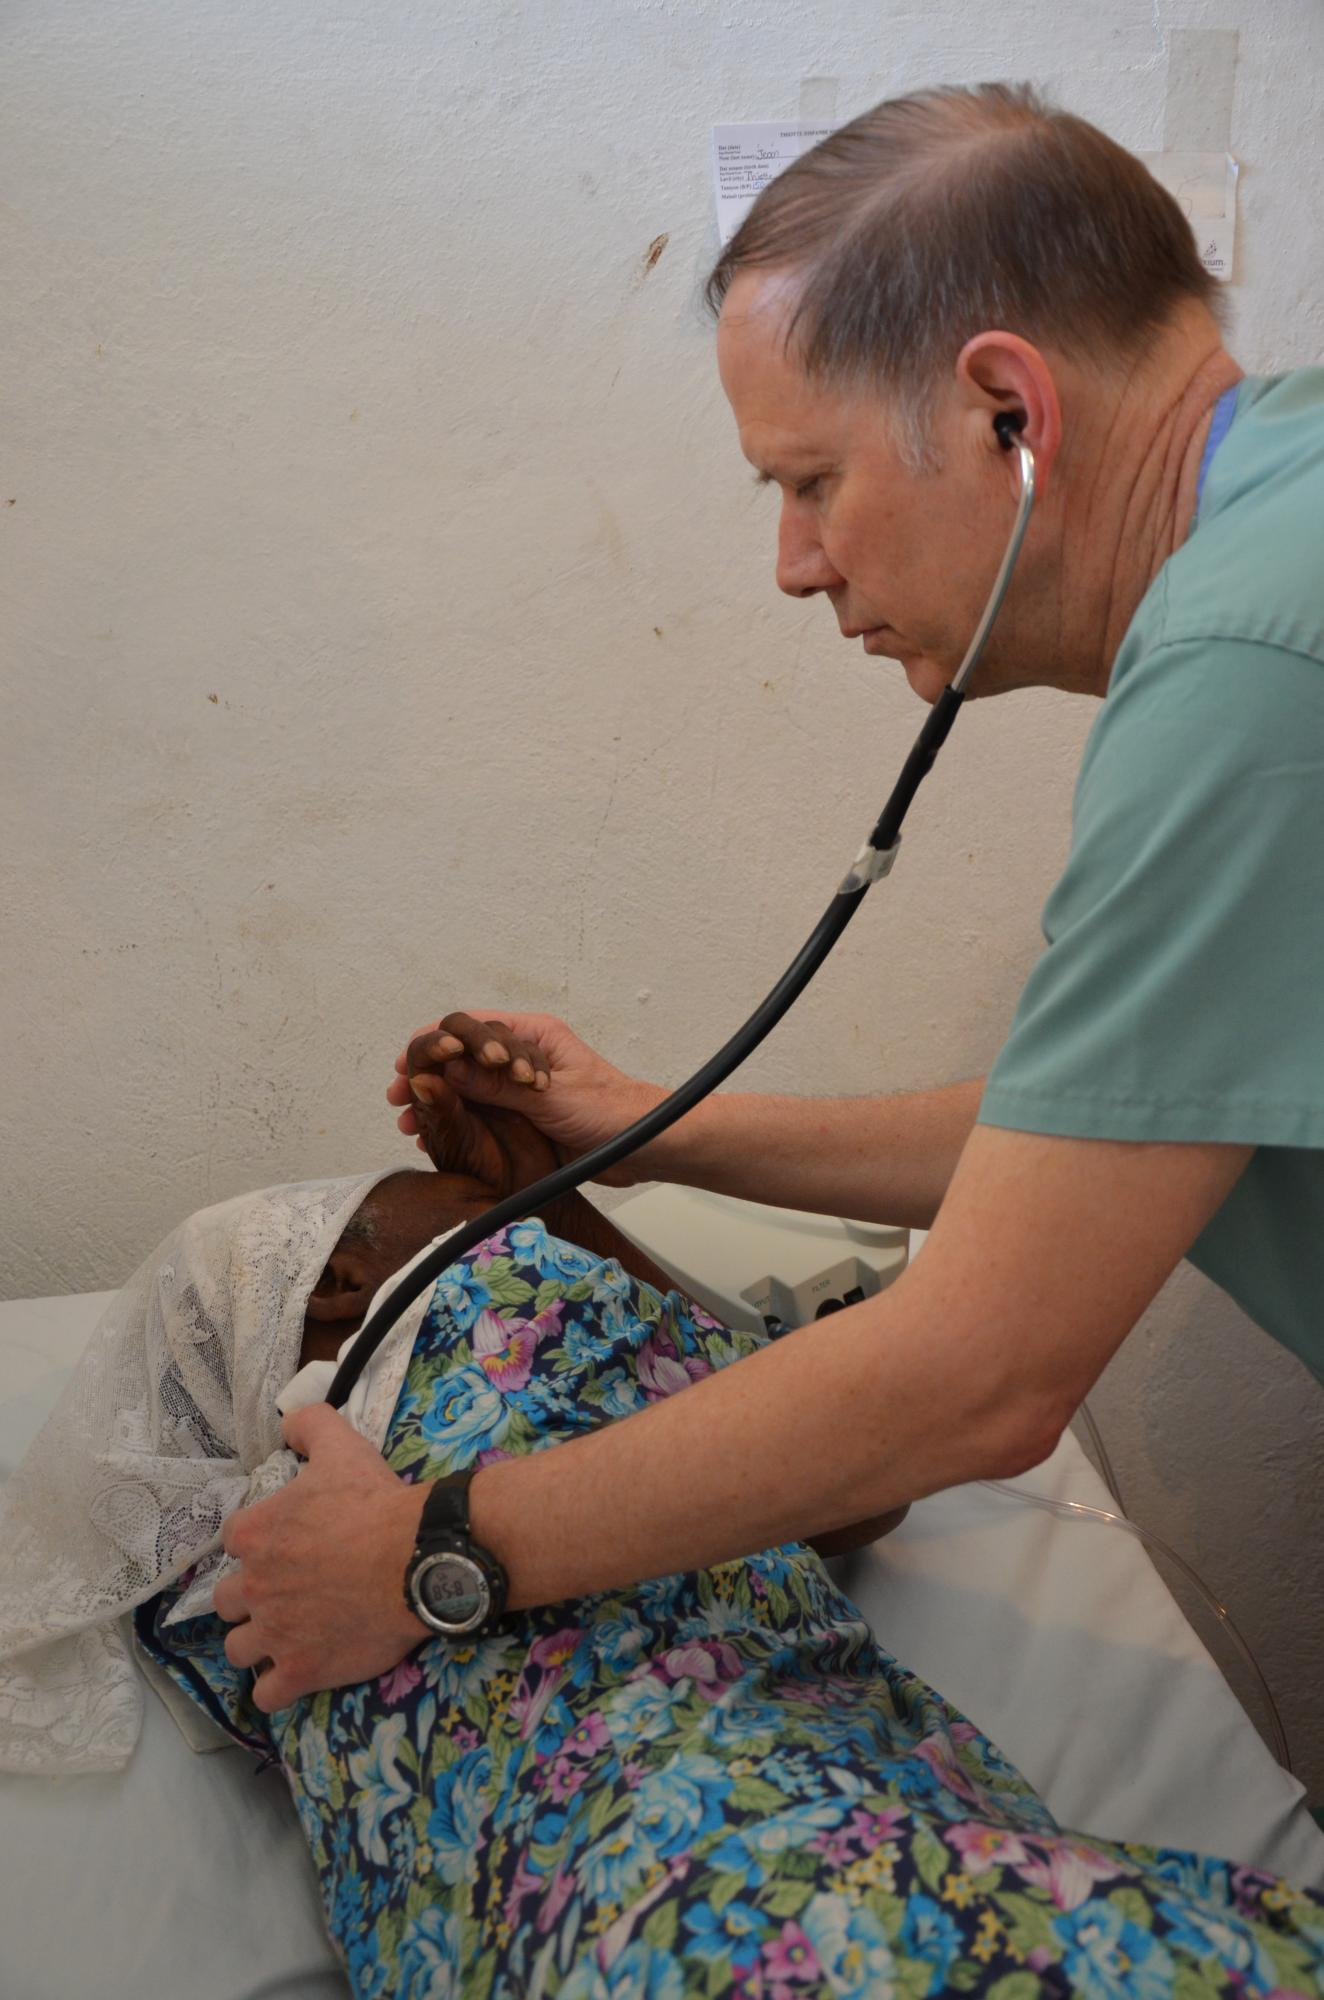 Haiti2013_Dr_Bill_Cook__w_pt__compassion_lung_exm_735.jpg